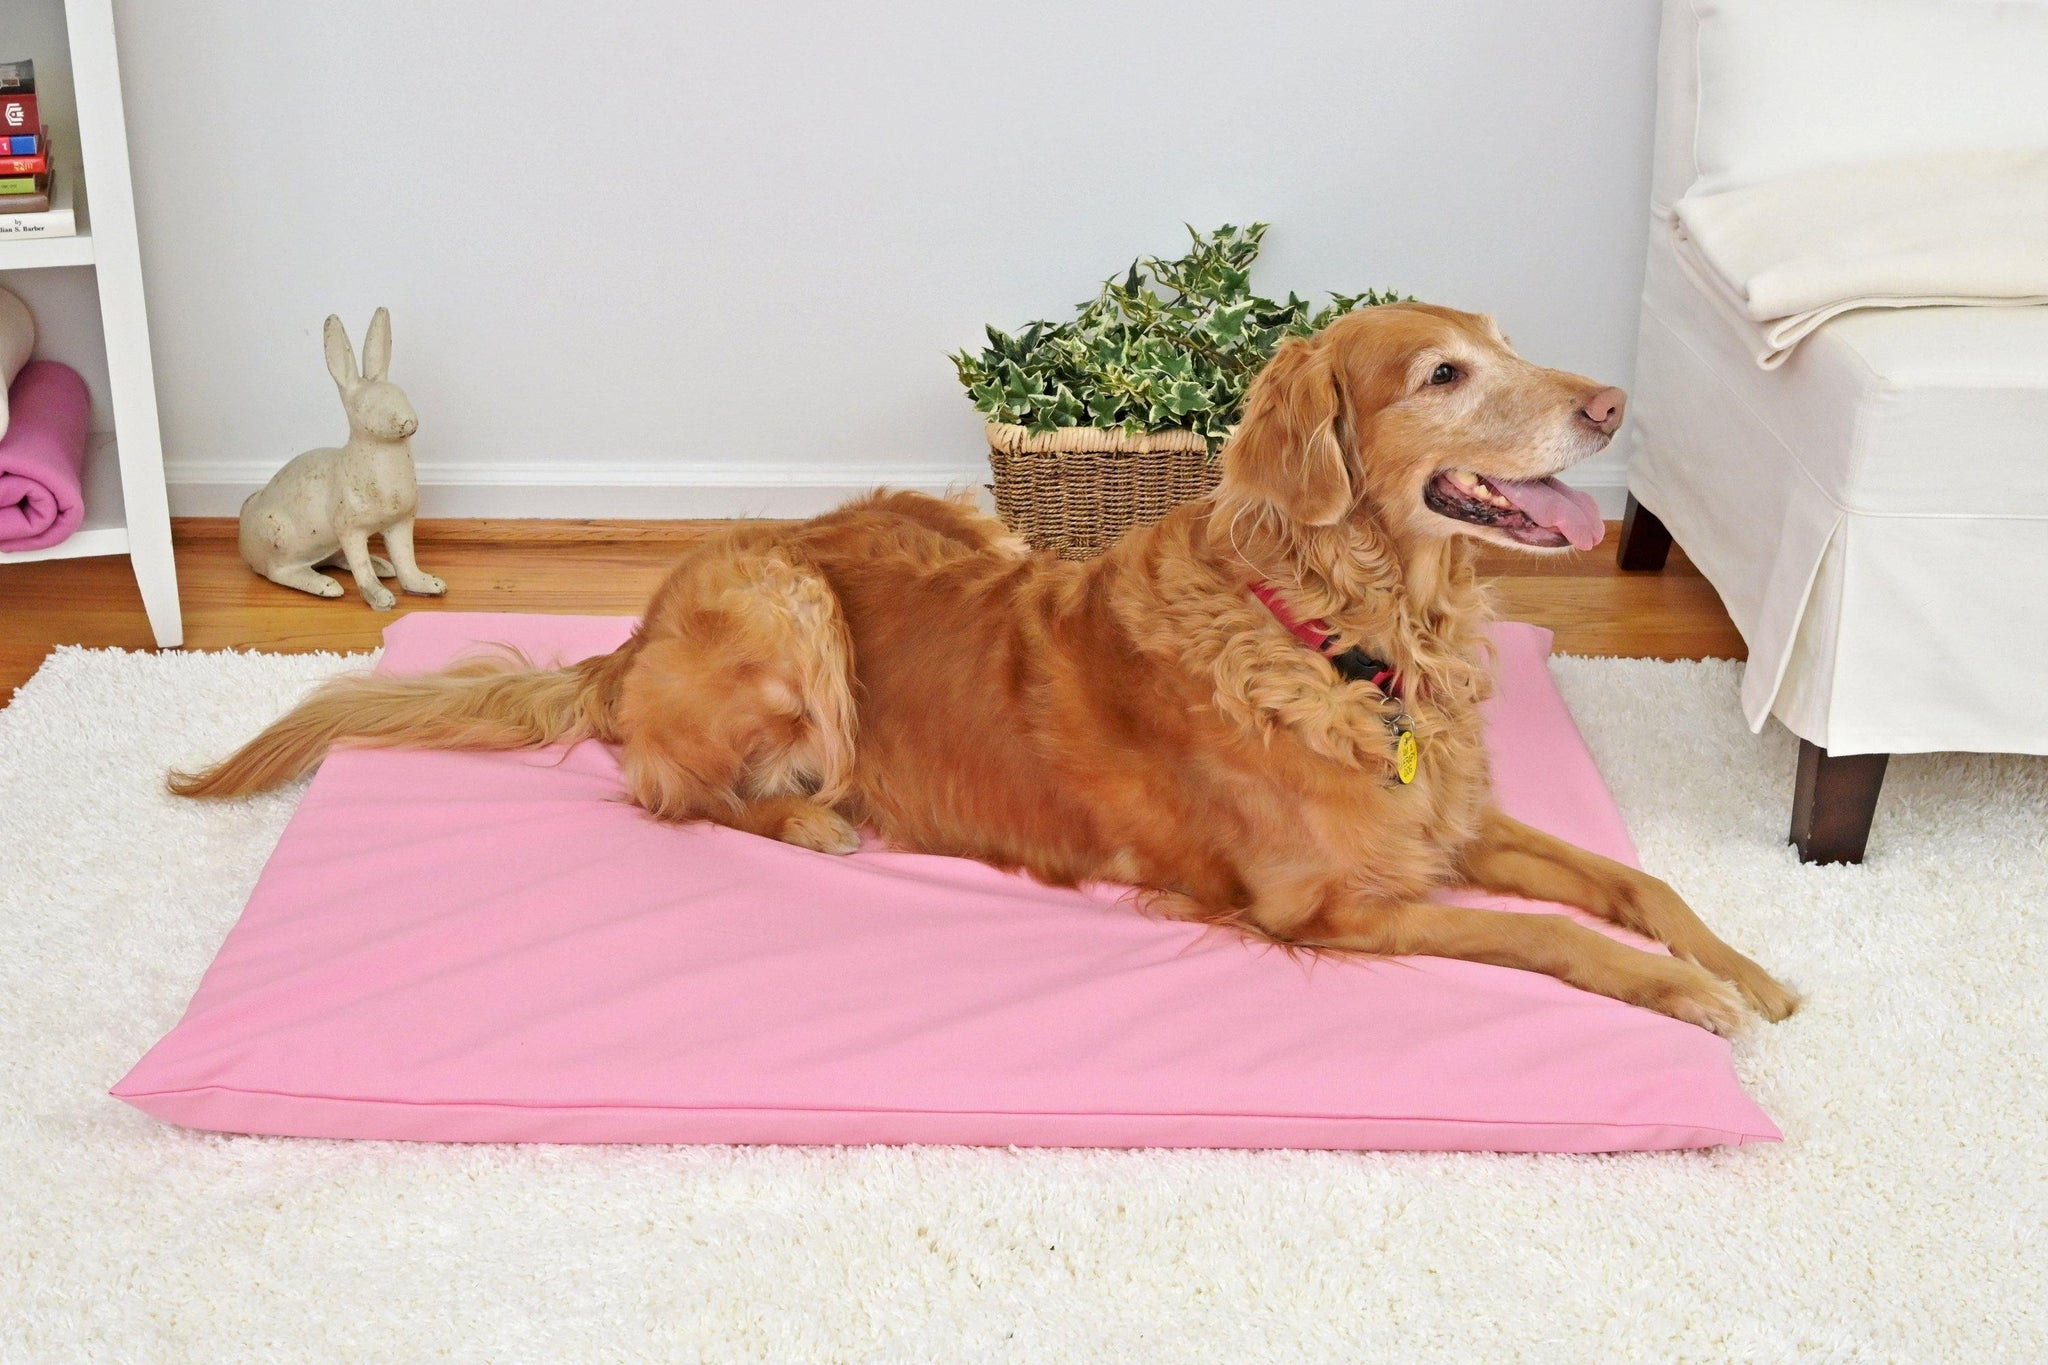 Golden retriever on a pink dog mat in a white room